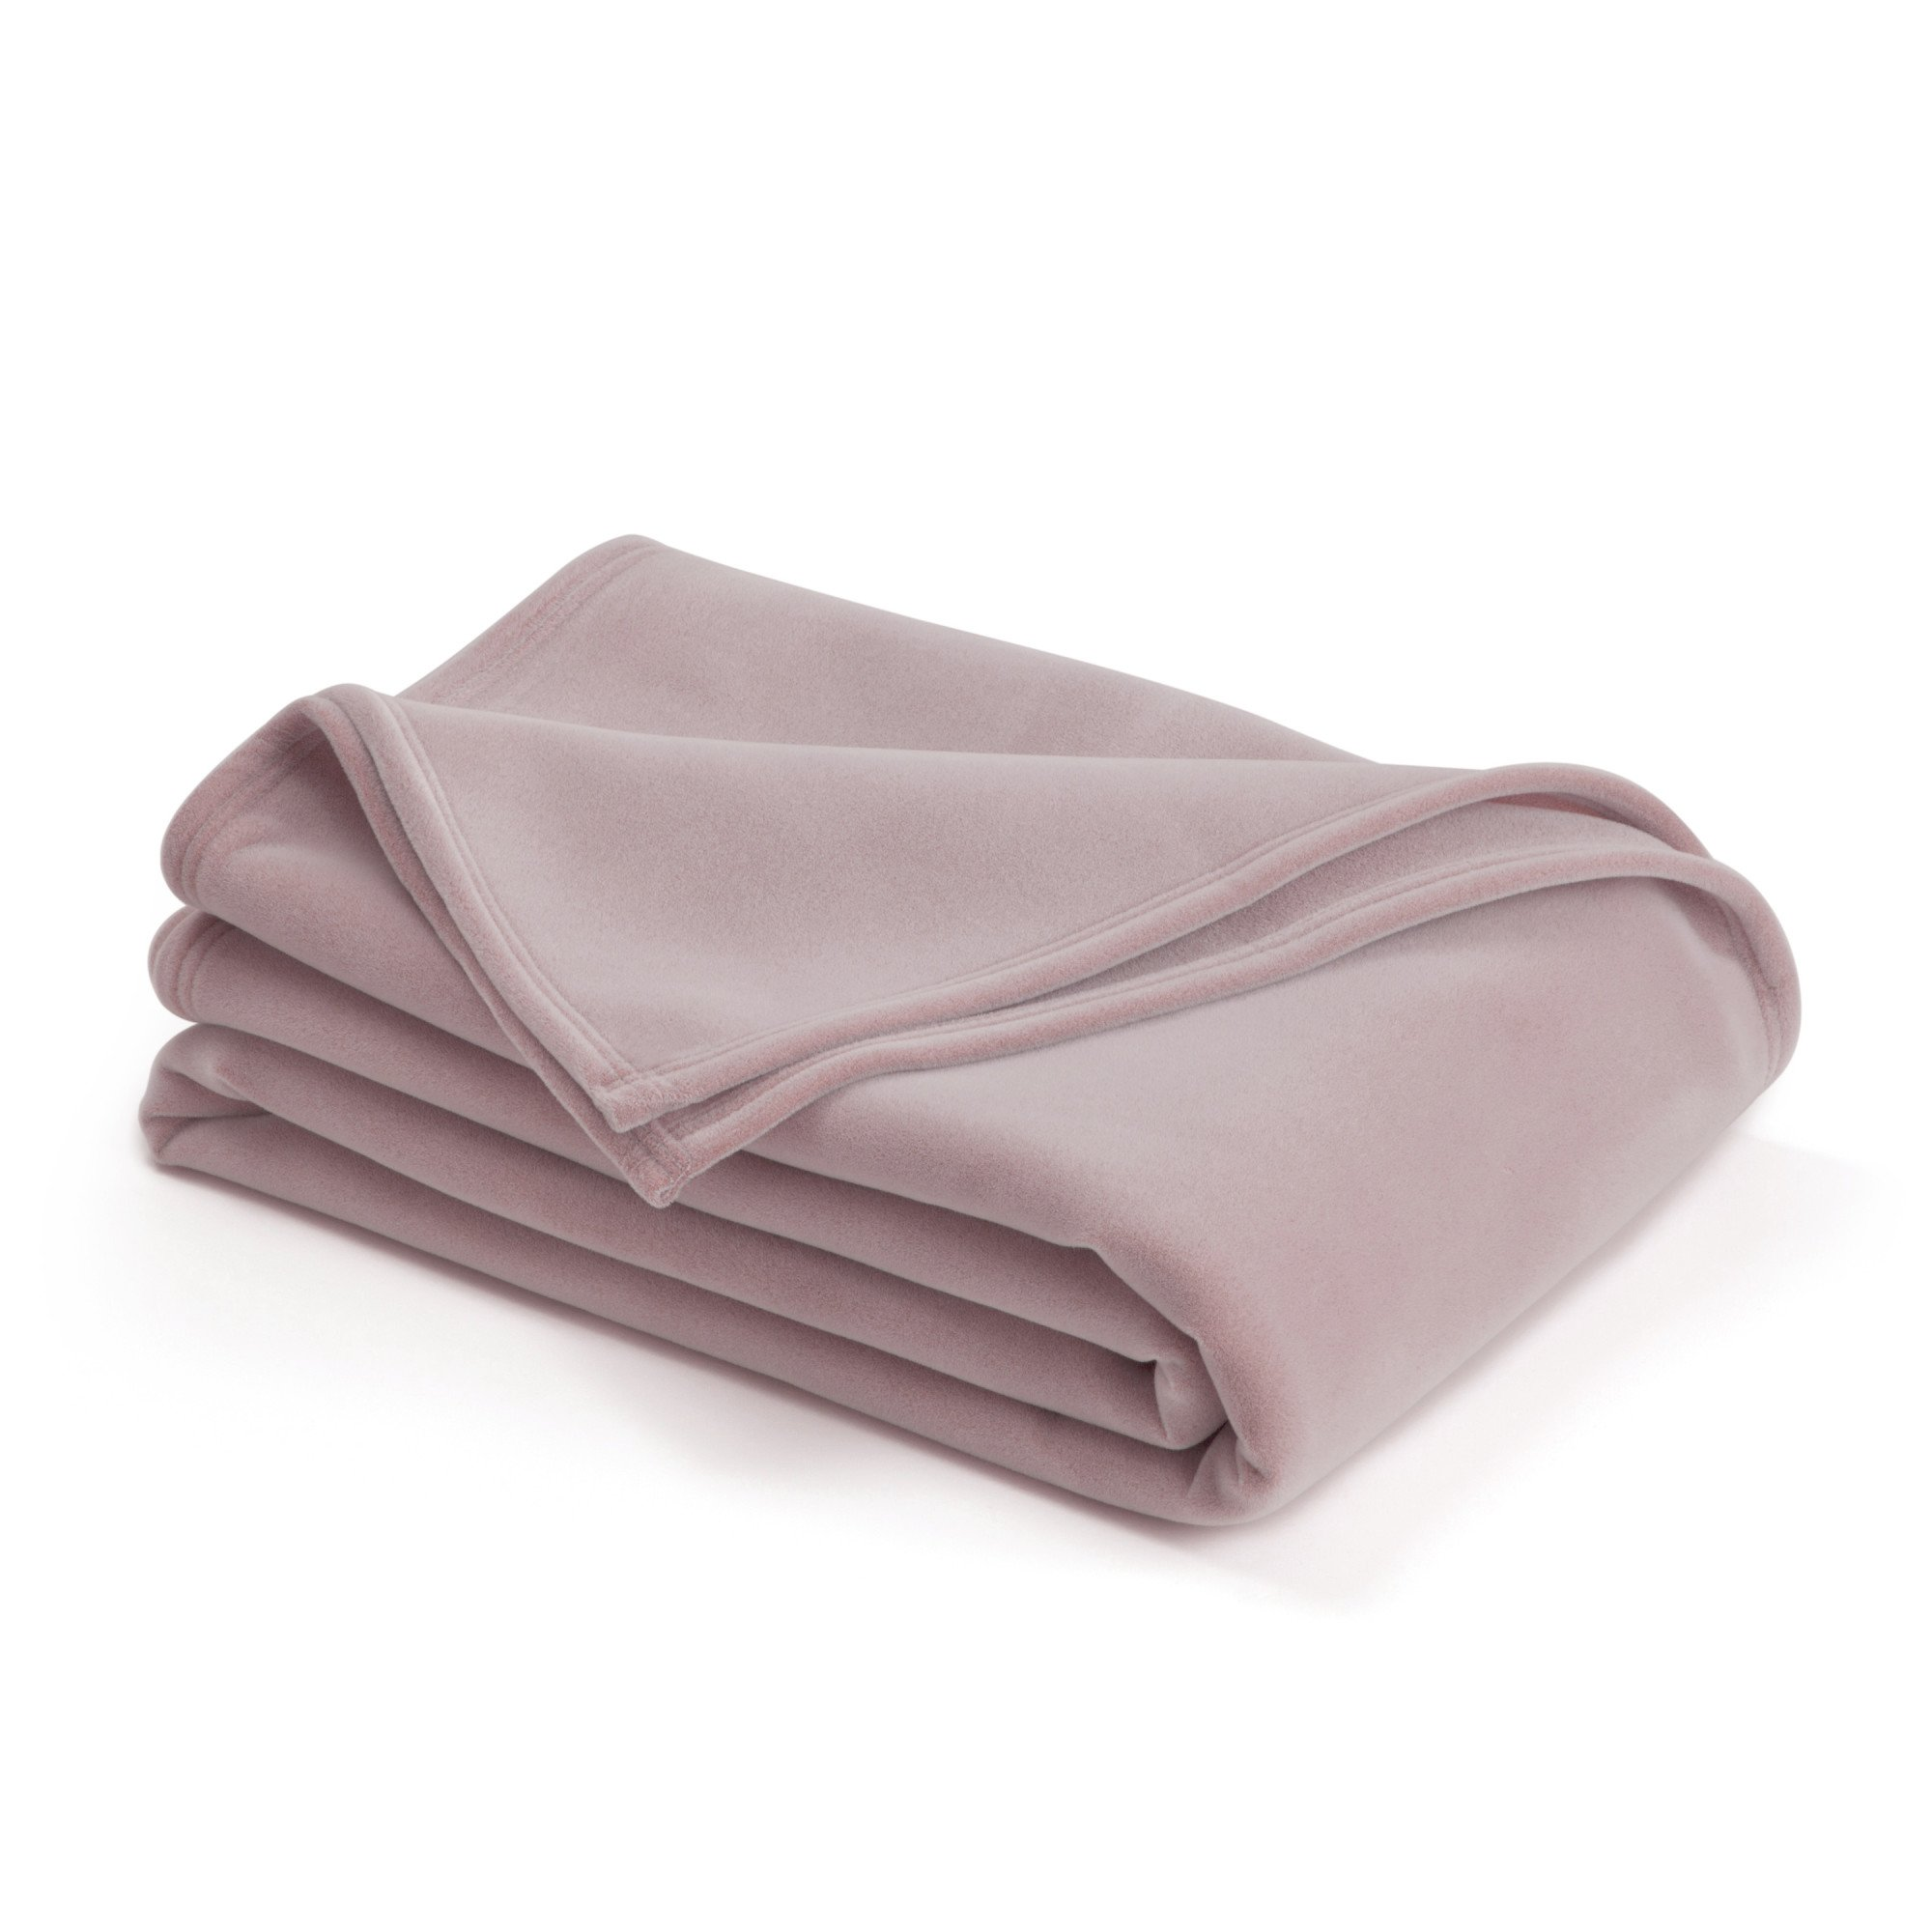 Martex The Original Vellux Blanket - Twin, Soft, Warm, Insulated, Pet-Friendly, Home Bed & Sofa - Plum Rose